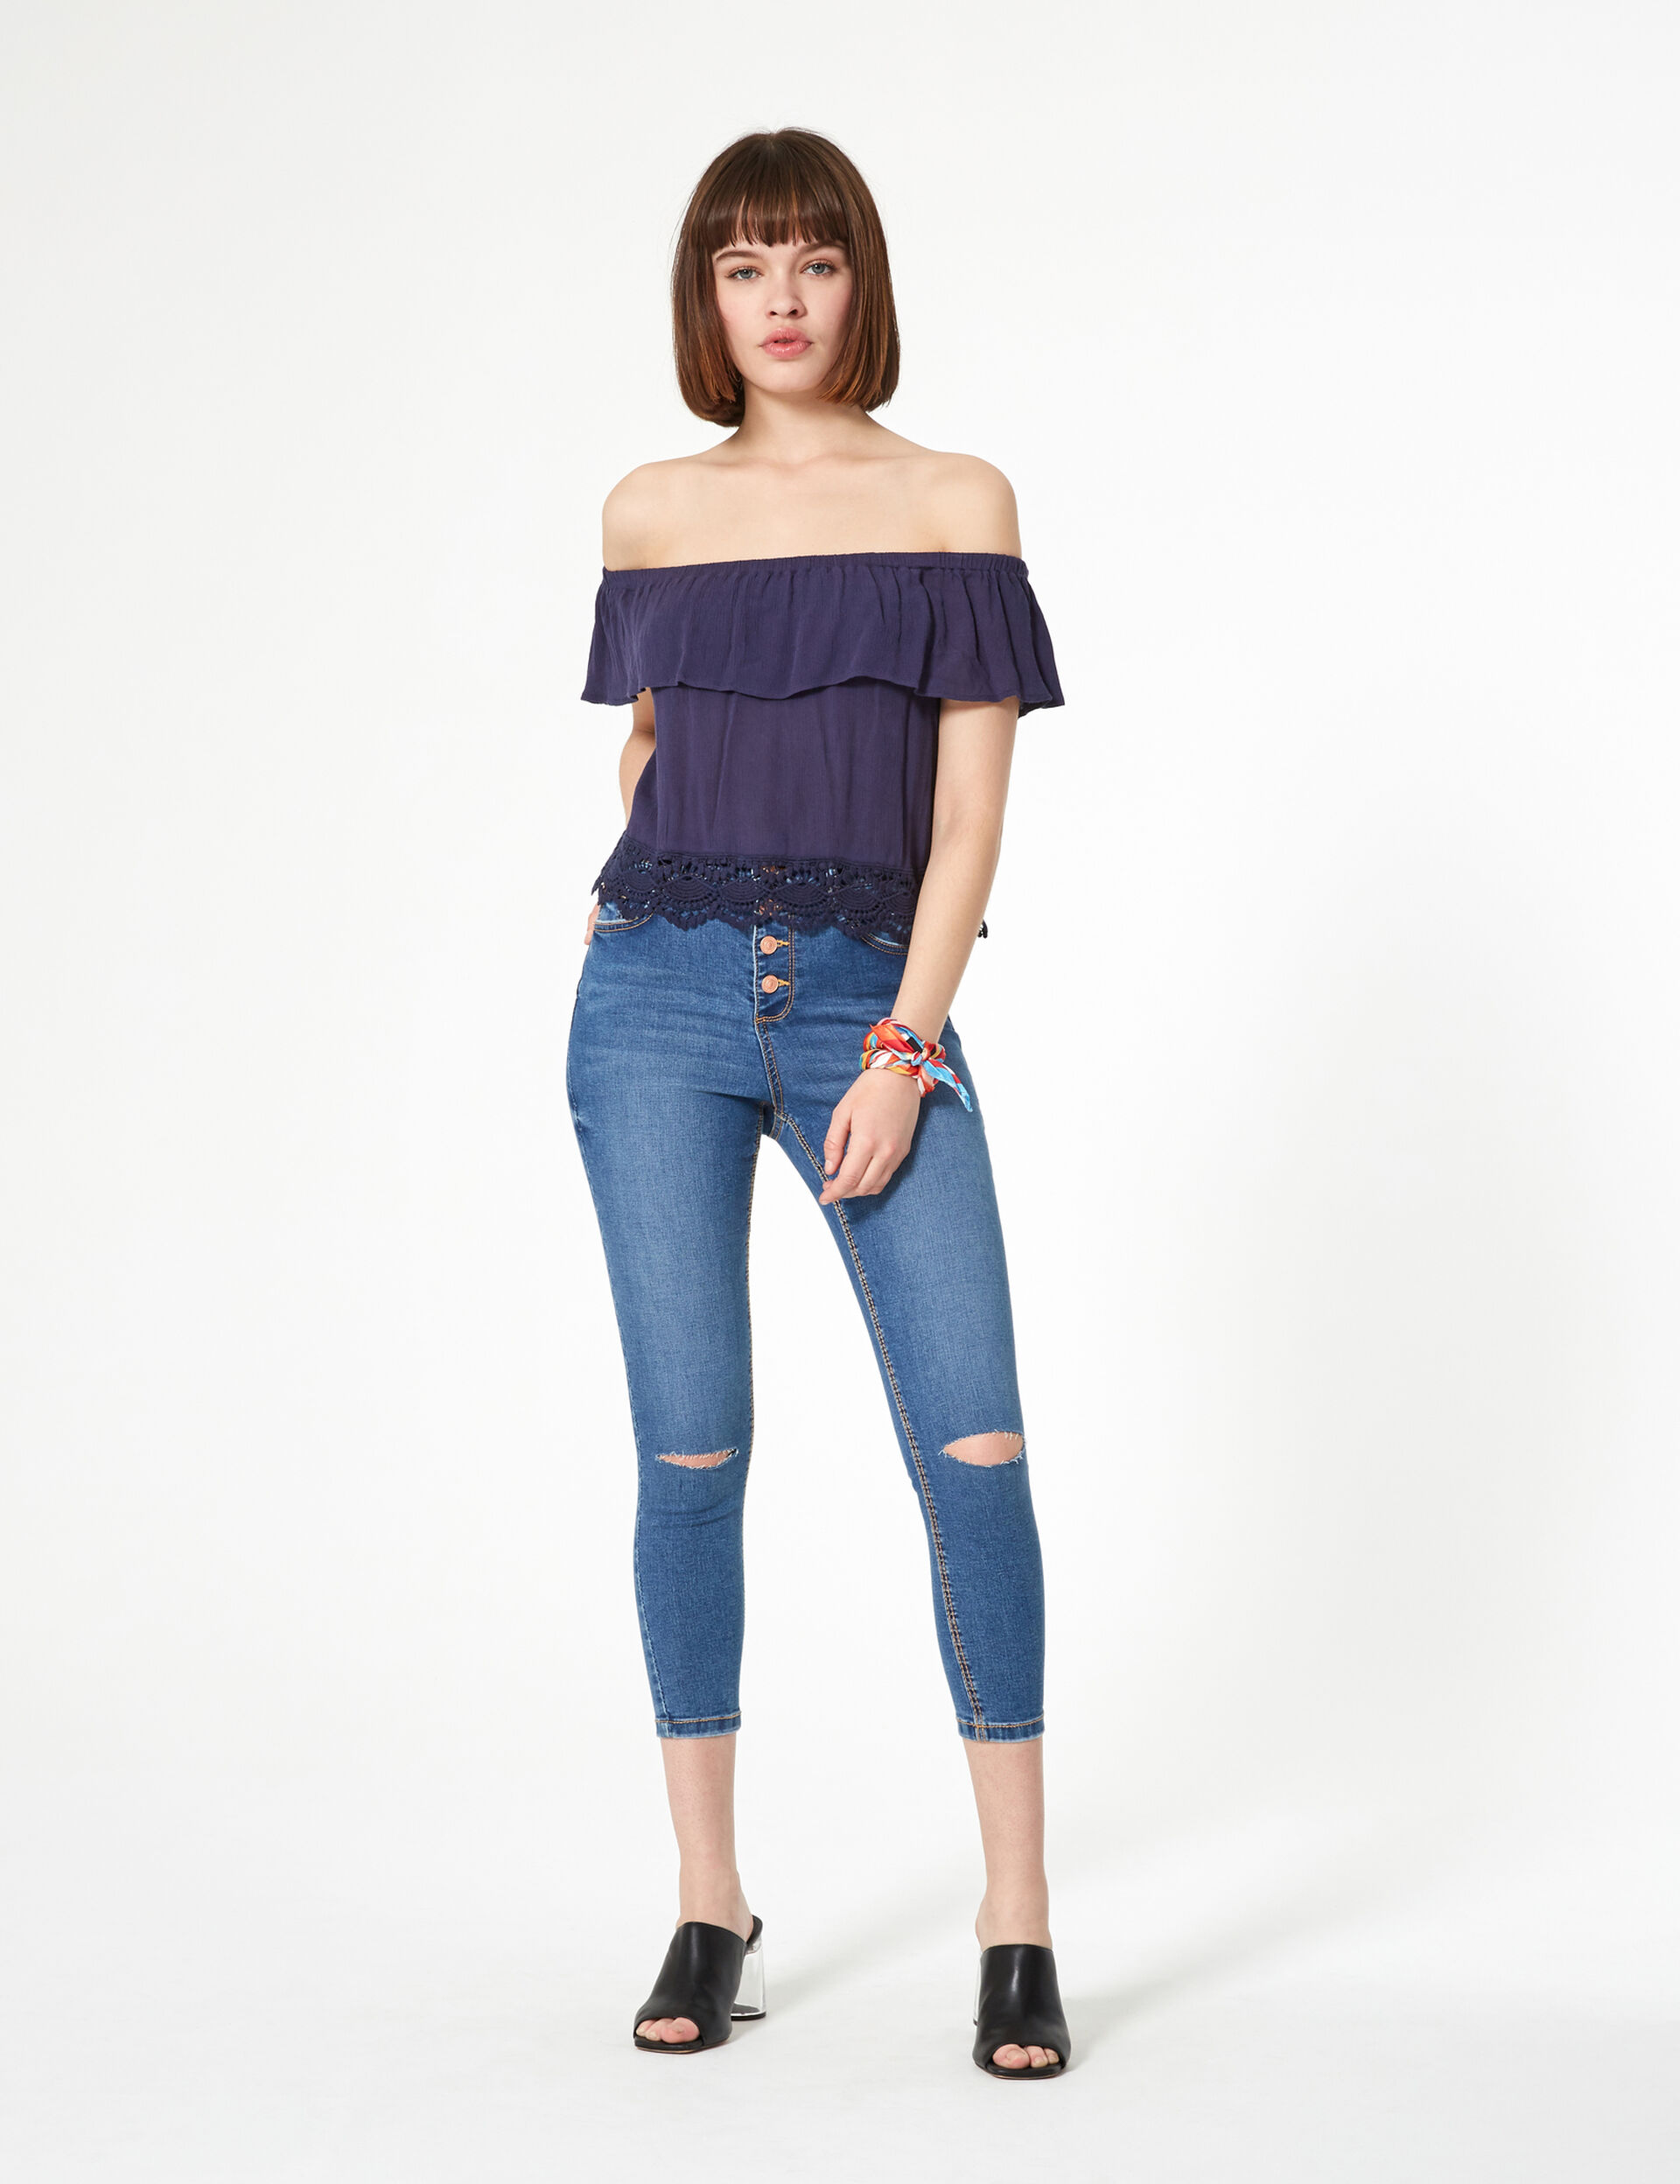 Navy blue blouse with frill detail